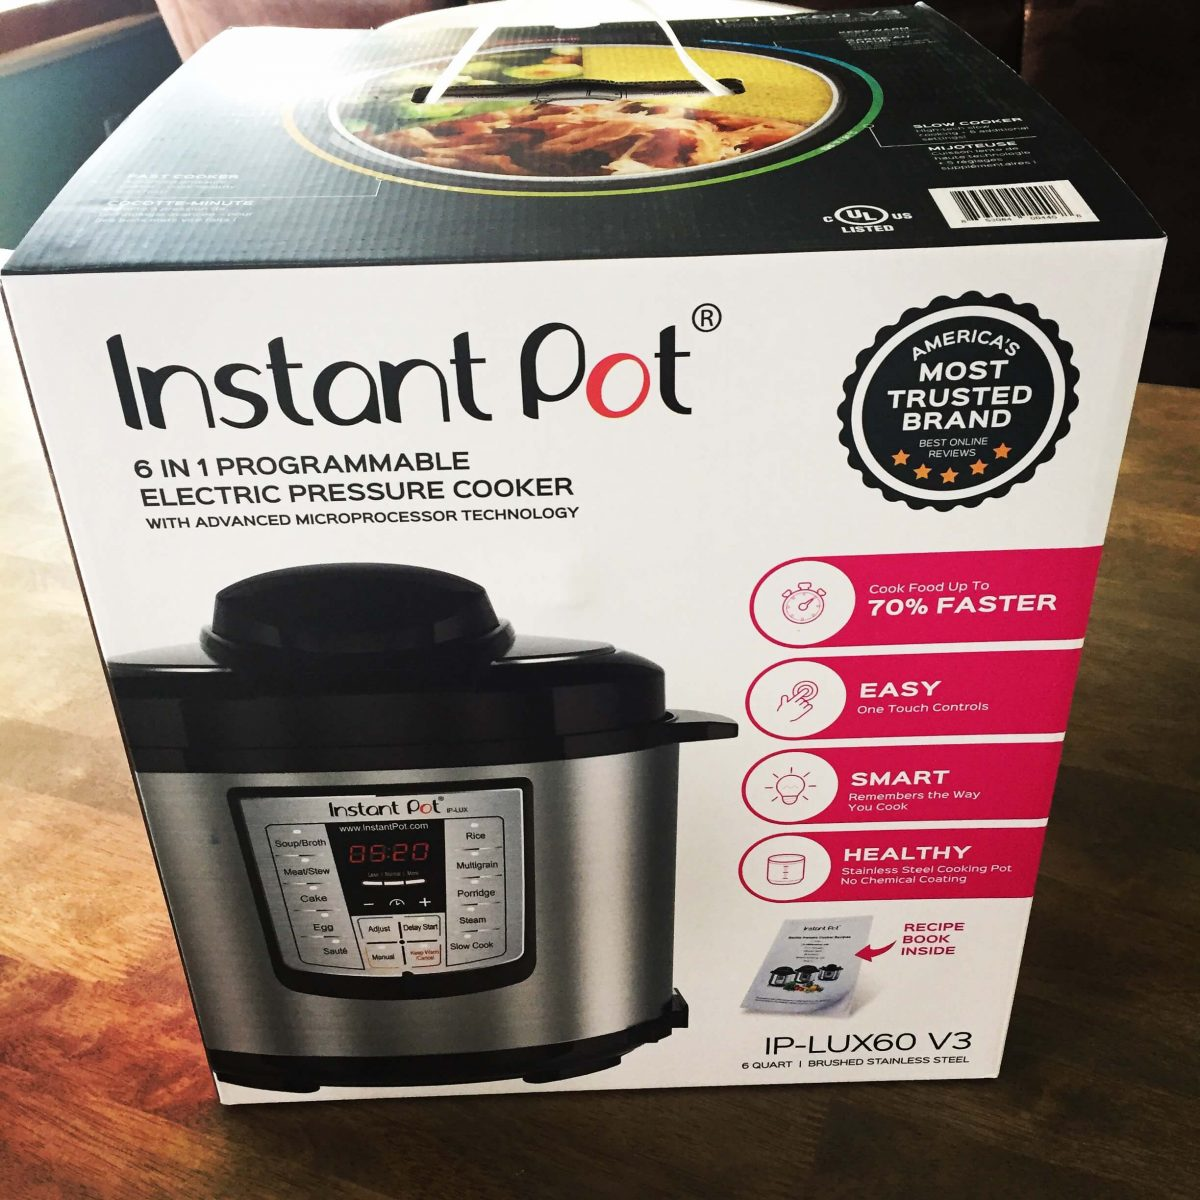 Instant Pot IP-LUX60 V3 Programmable Electric Pressure Cooker, 6Qt, 1000W (updated model)